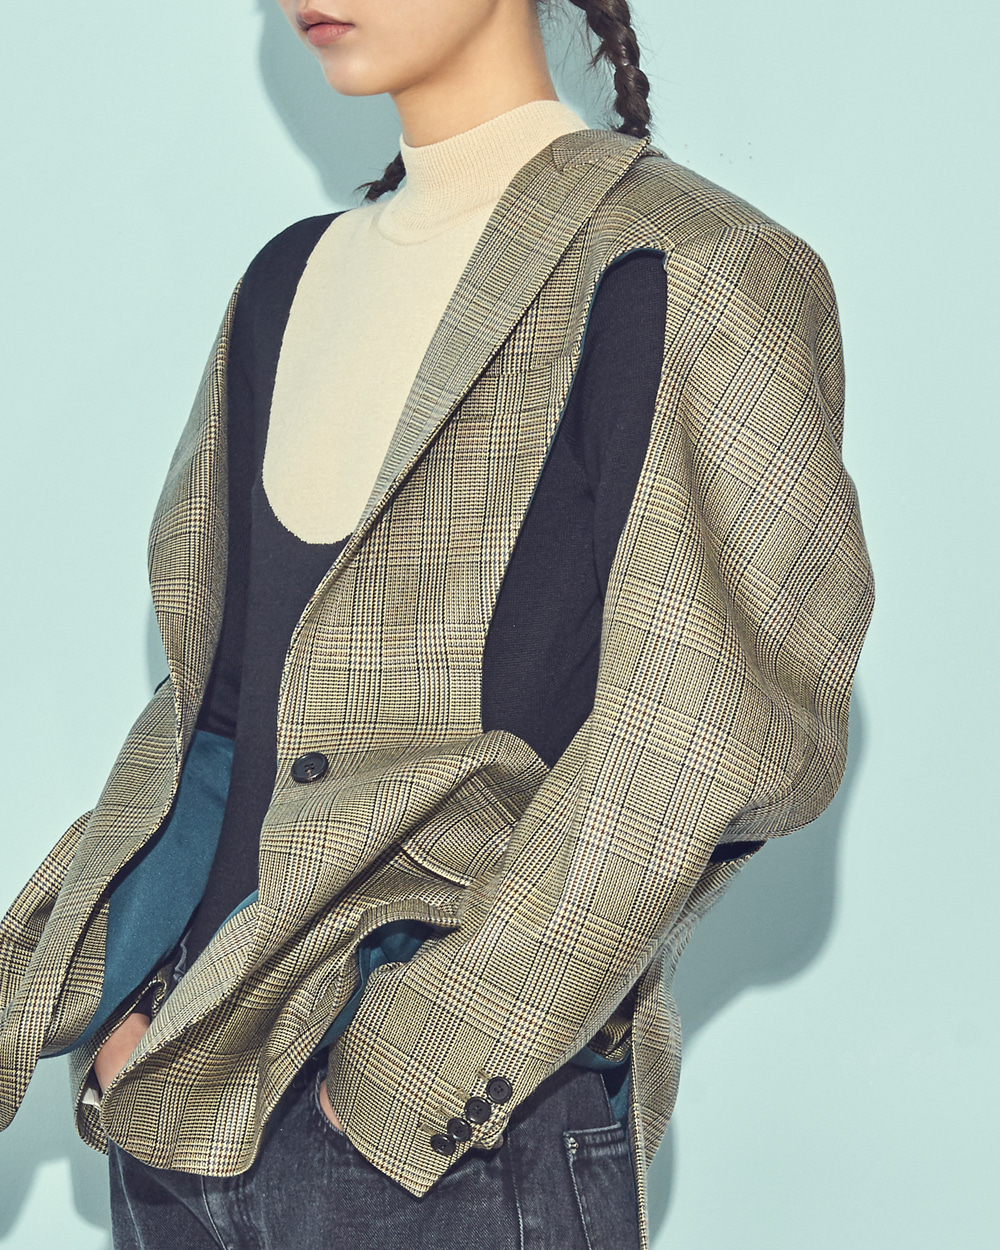 FW19 CUTOUT POINT SINGLE CHECK JACKET